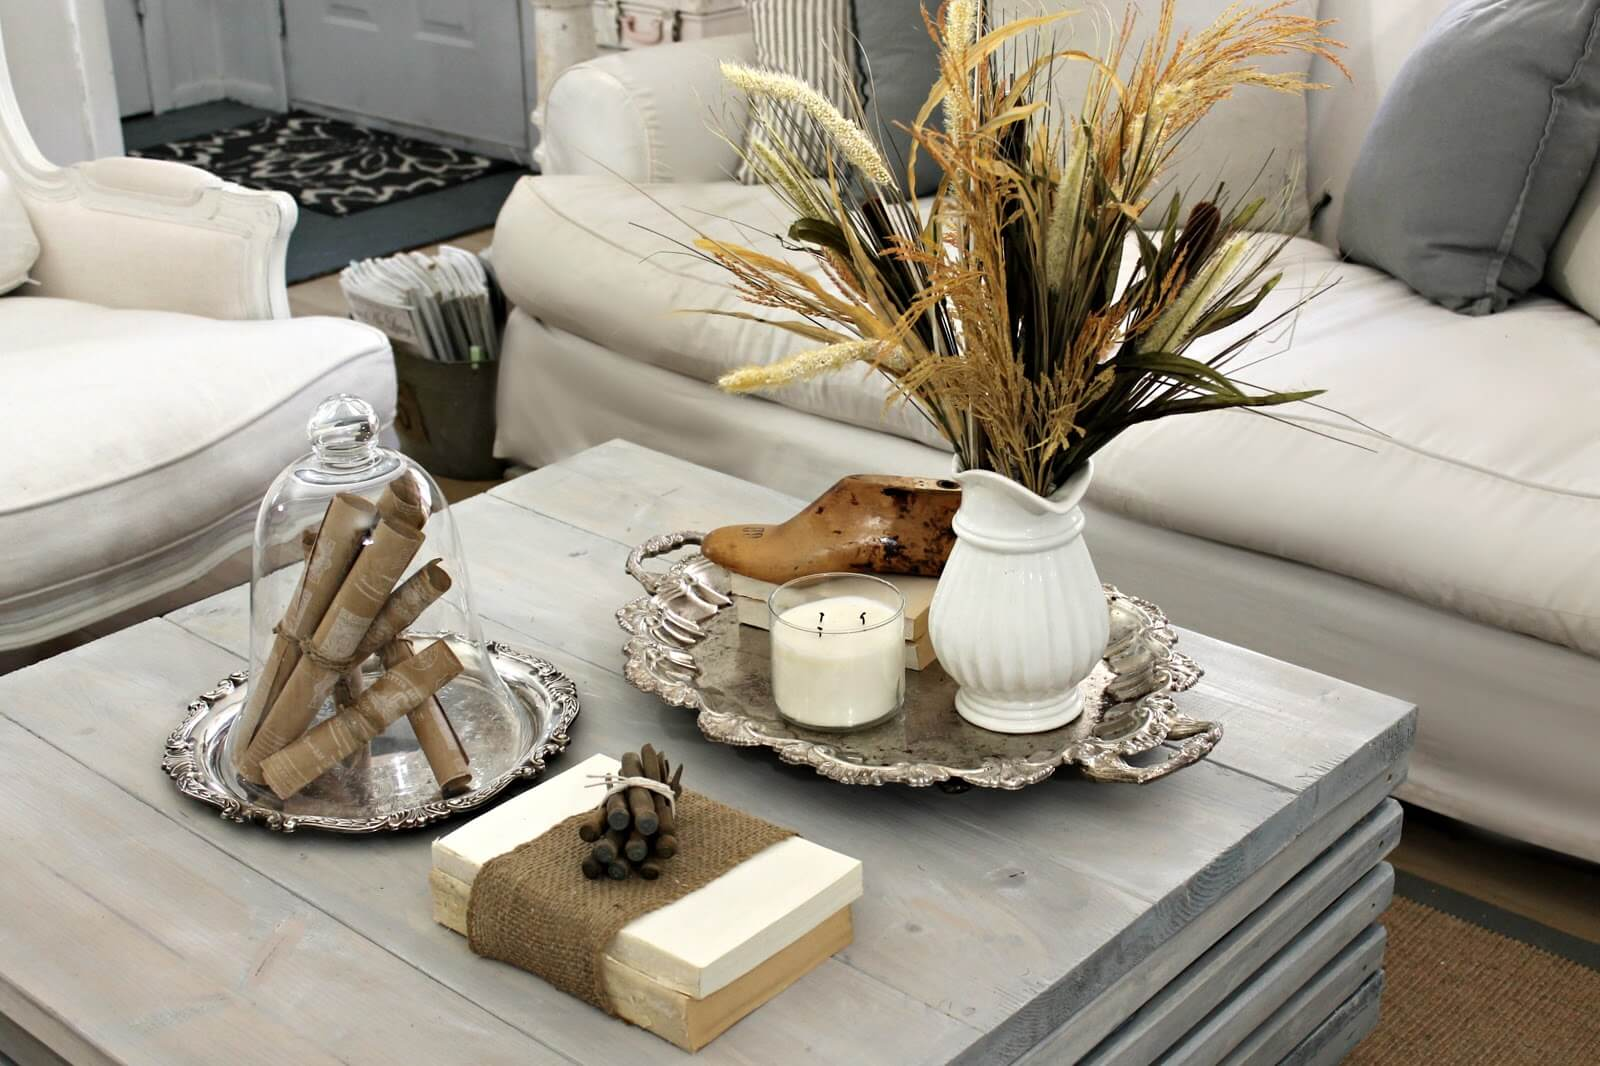 living room coffee table decorations cool wallpaper 37 best decorating ideas and designs for 2019 20 earth toned brown white natural element display with silver accents